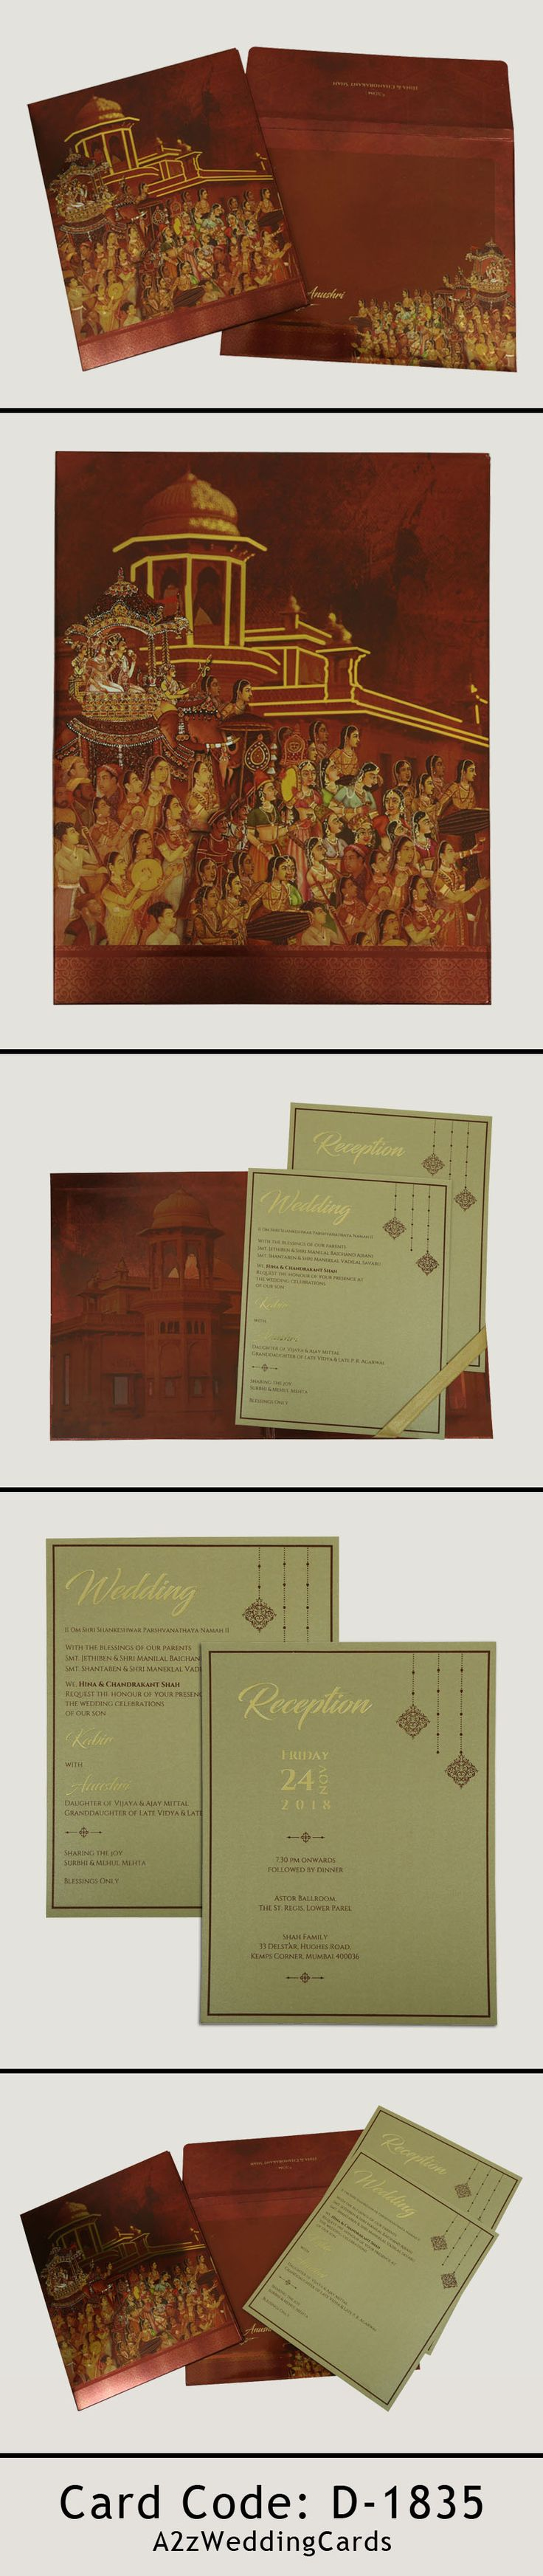 Shimmery box themed offset printed wedding